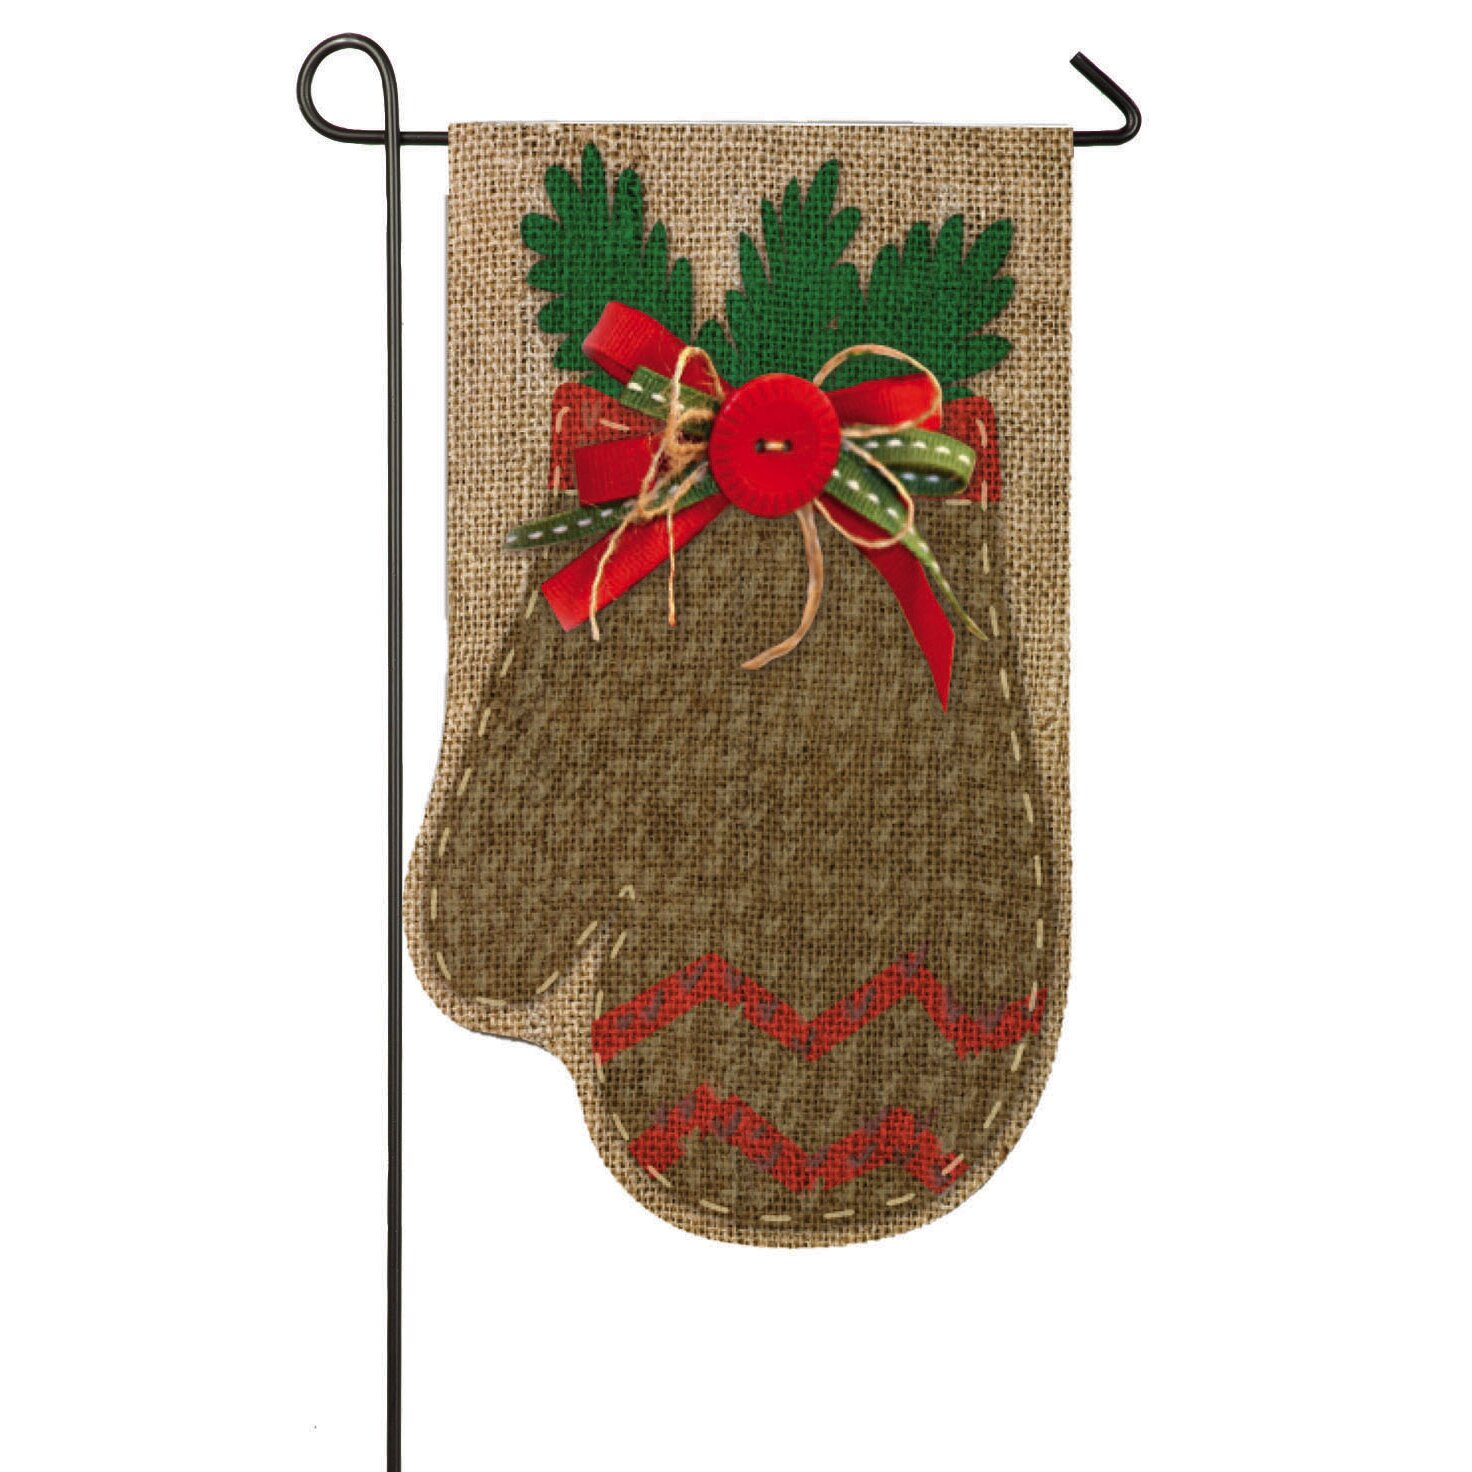 Evergreen Flag Amp Garden Chevron Mitten Garden Flag